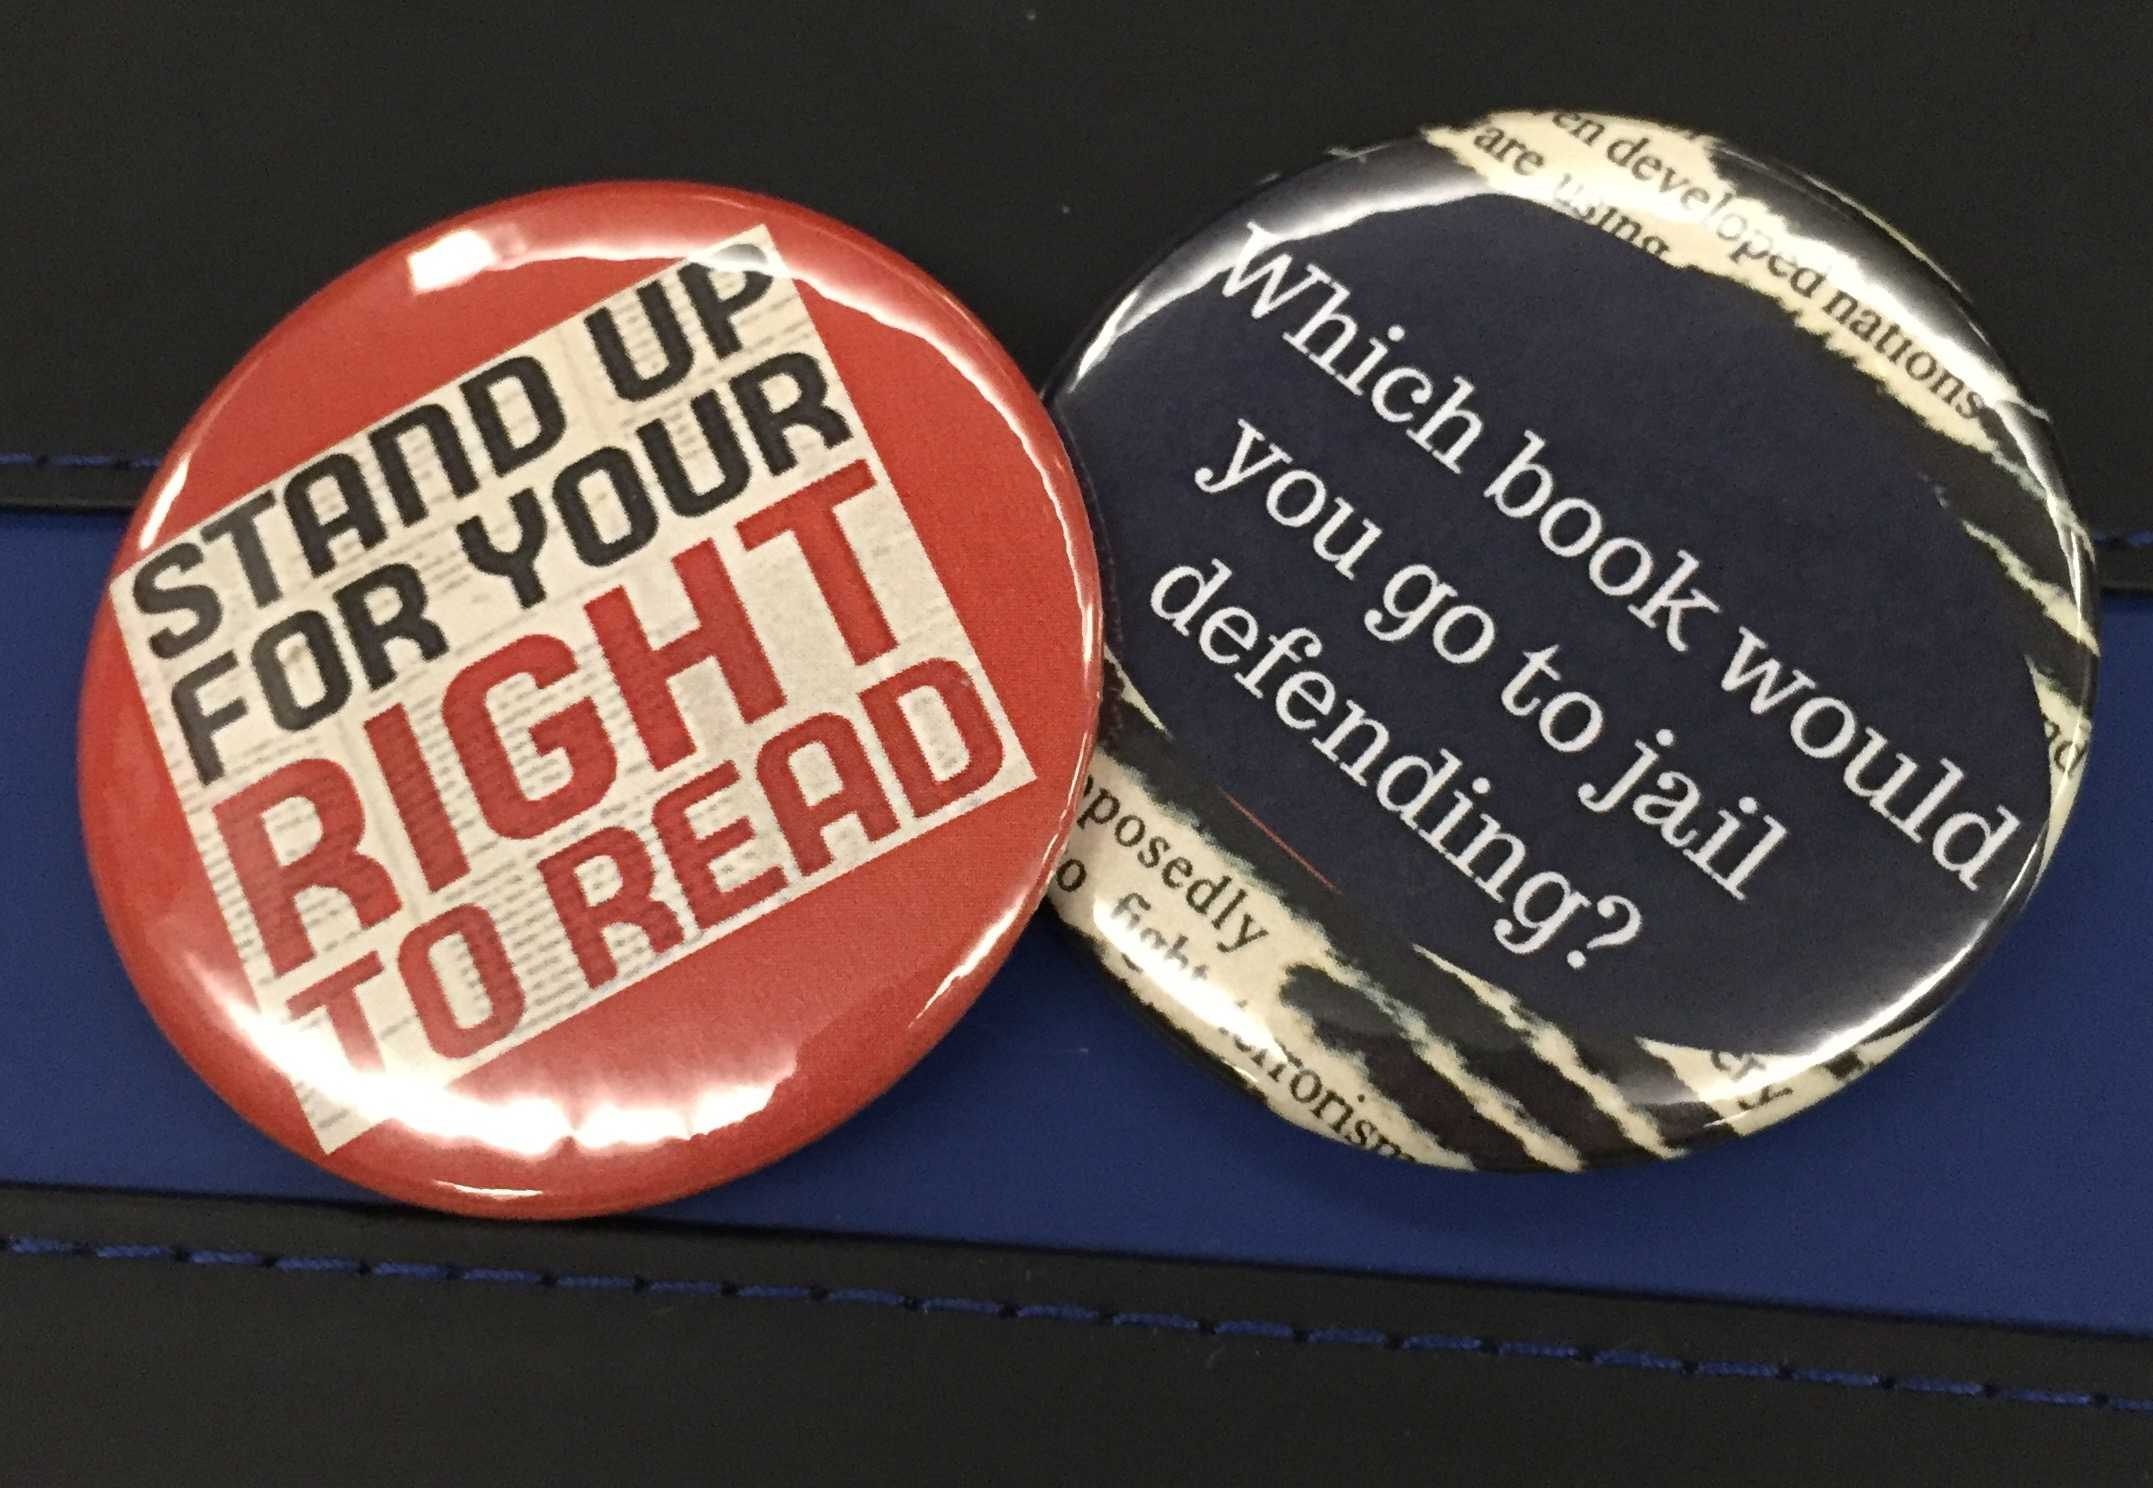 Library plans several events during Banned Books week